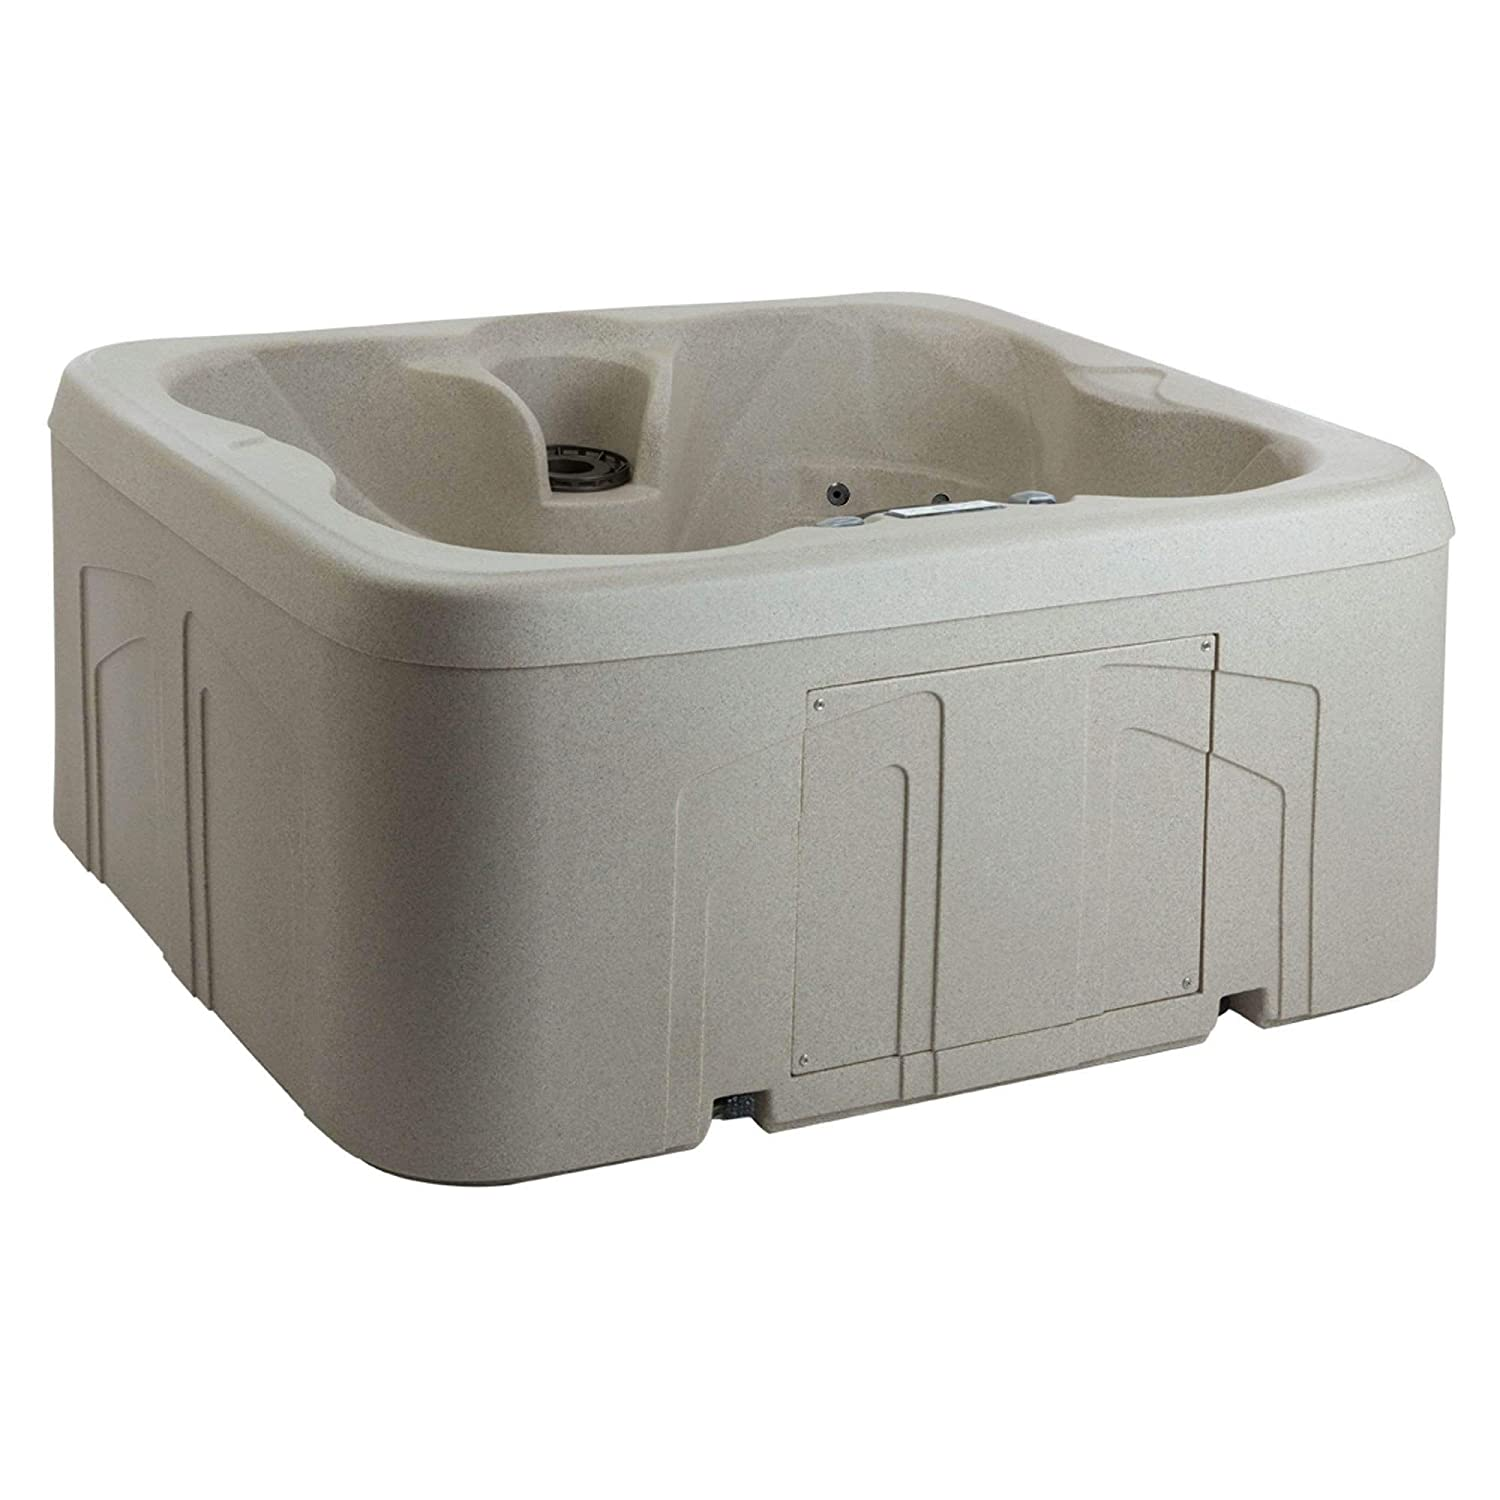 Top 10 Best Portable Hot Tubs (2020 Reviews & Buying Guide) 5